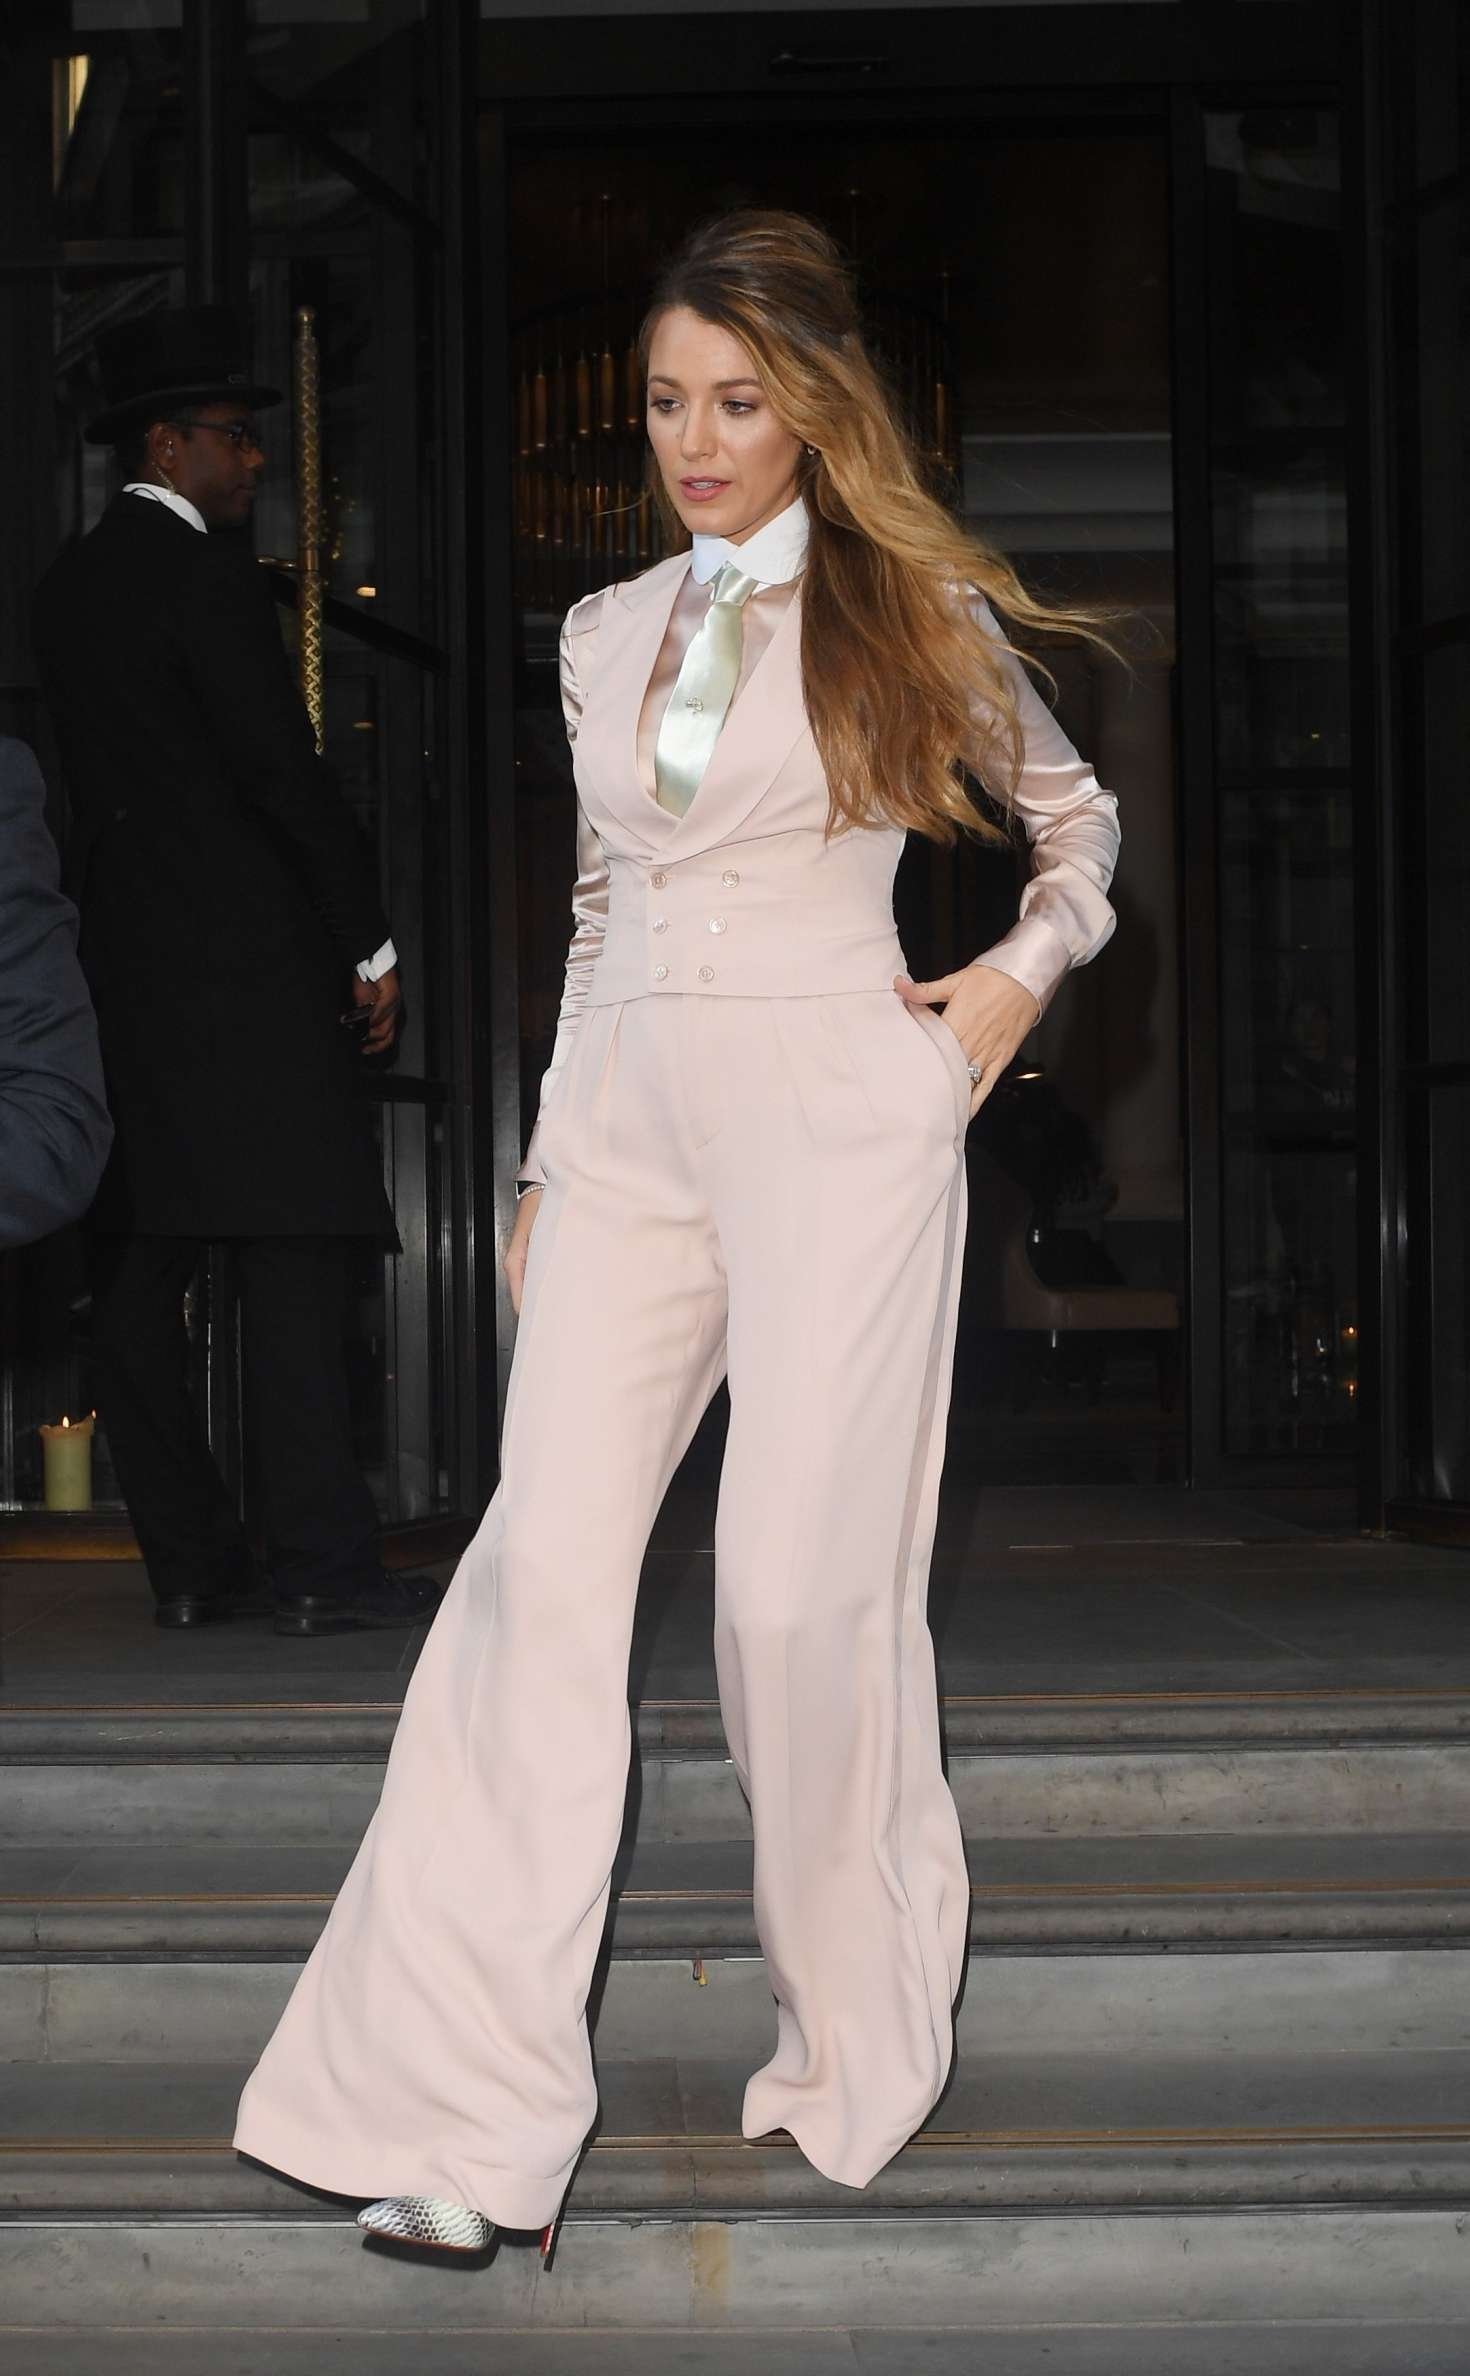 Blake Lively 2018 : Blake Lively: Leaving The Corinthia Hotel -09